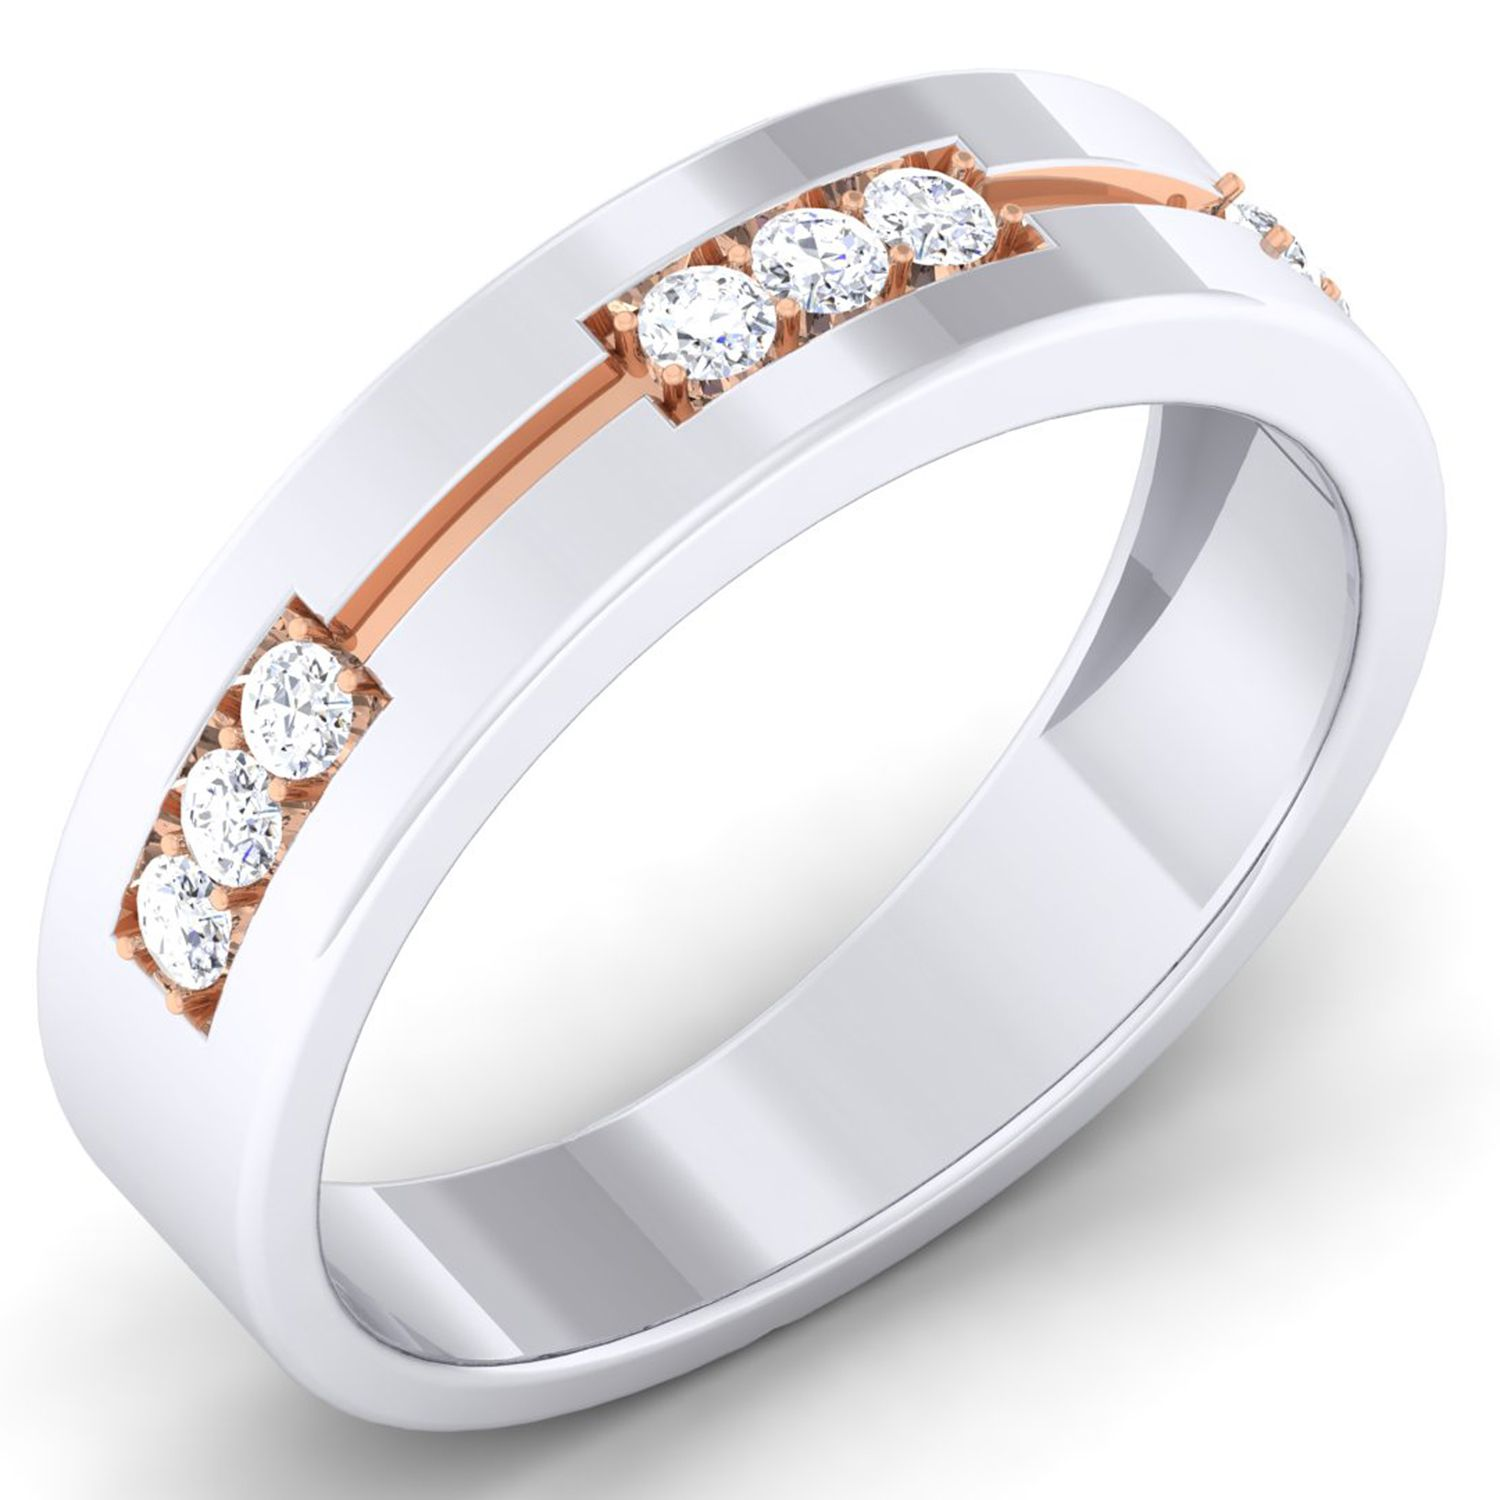 Myzevar 92.5 Silver Band Ring